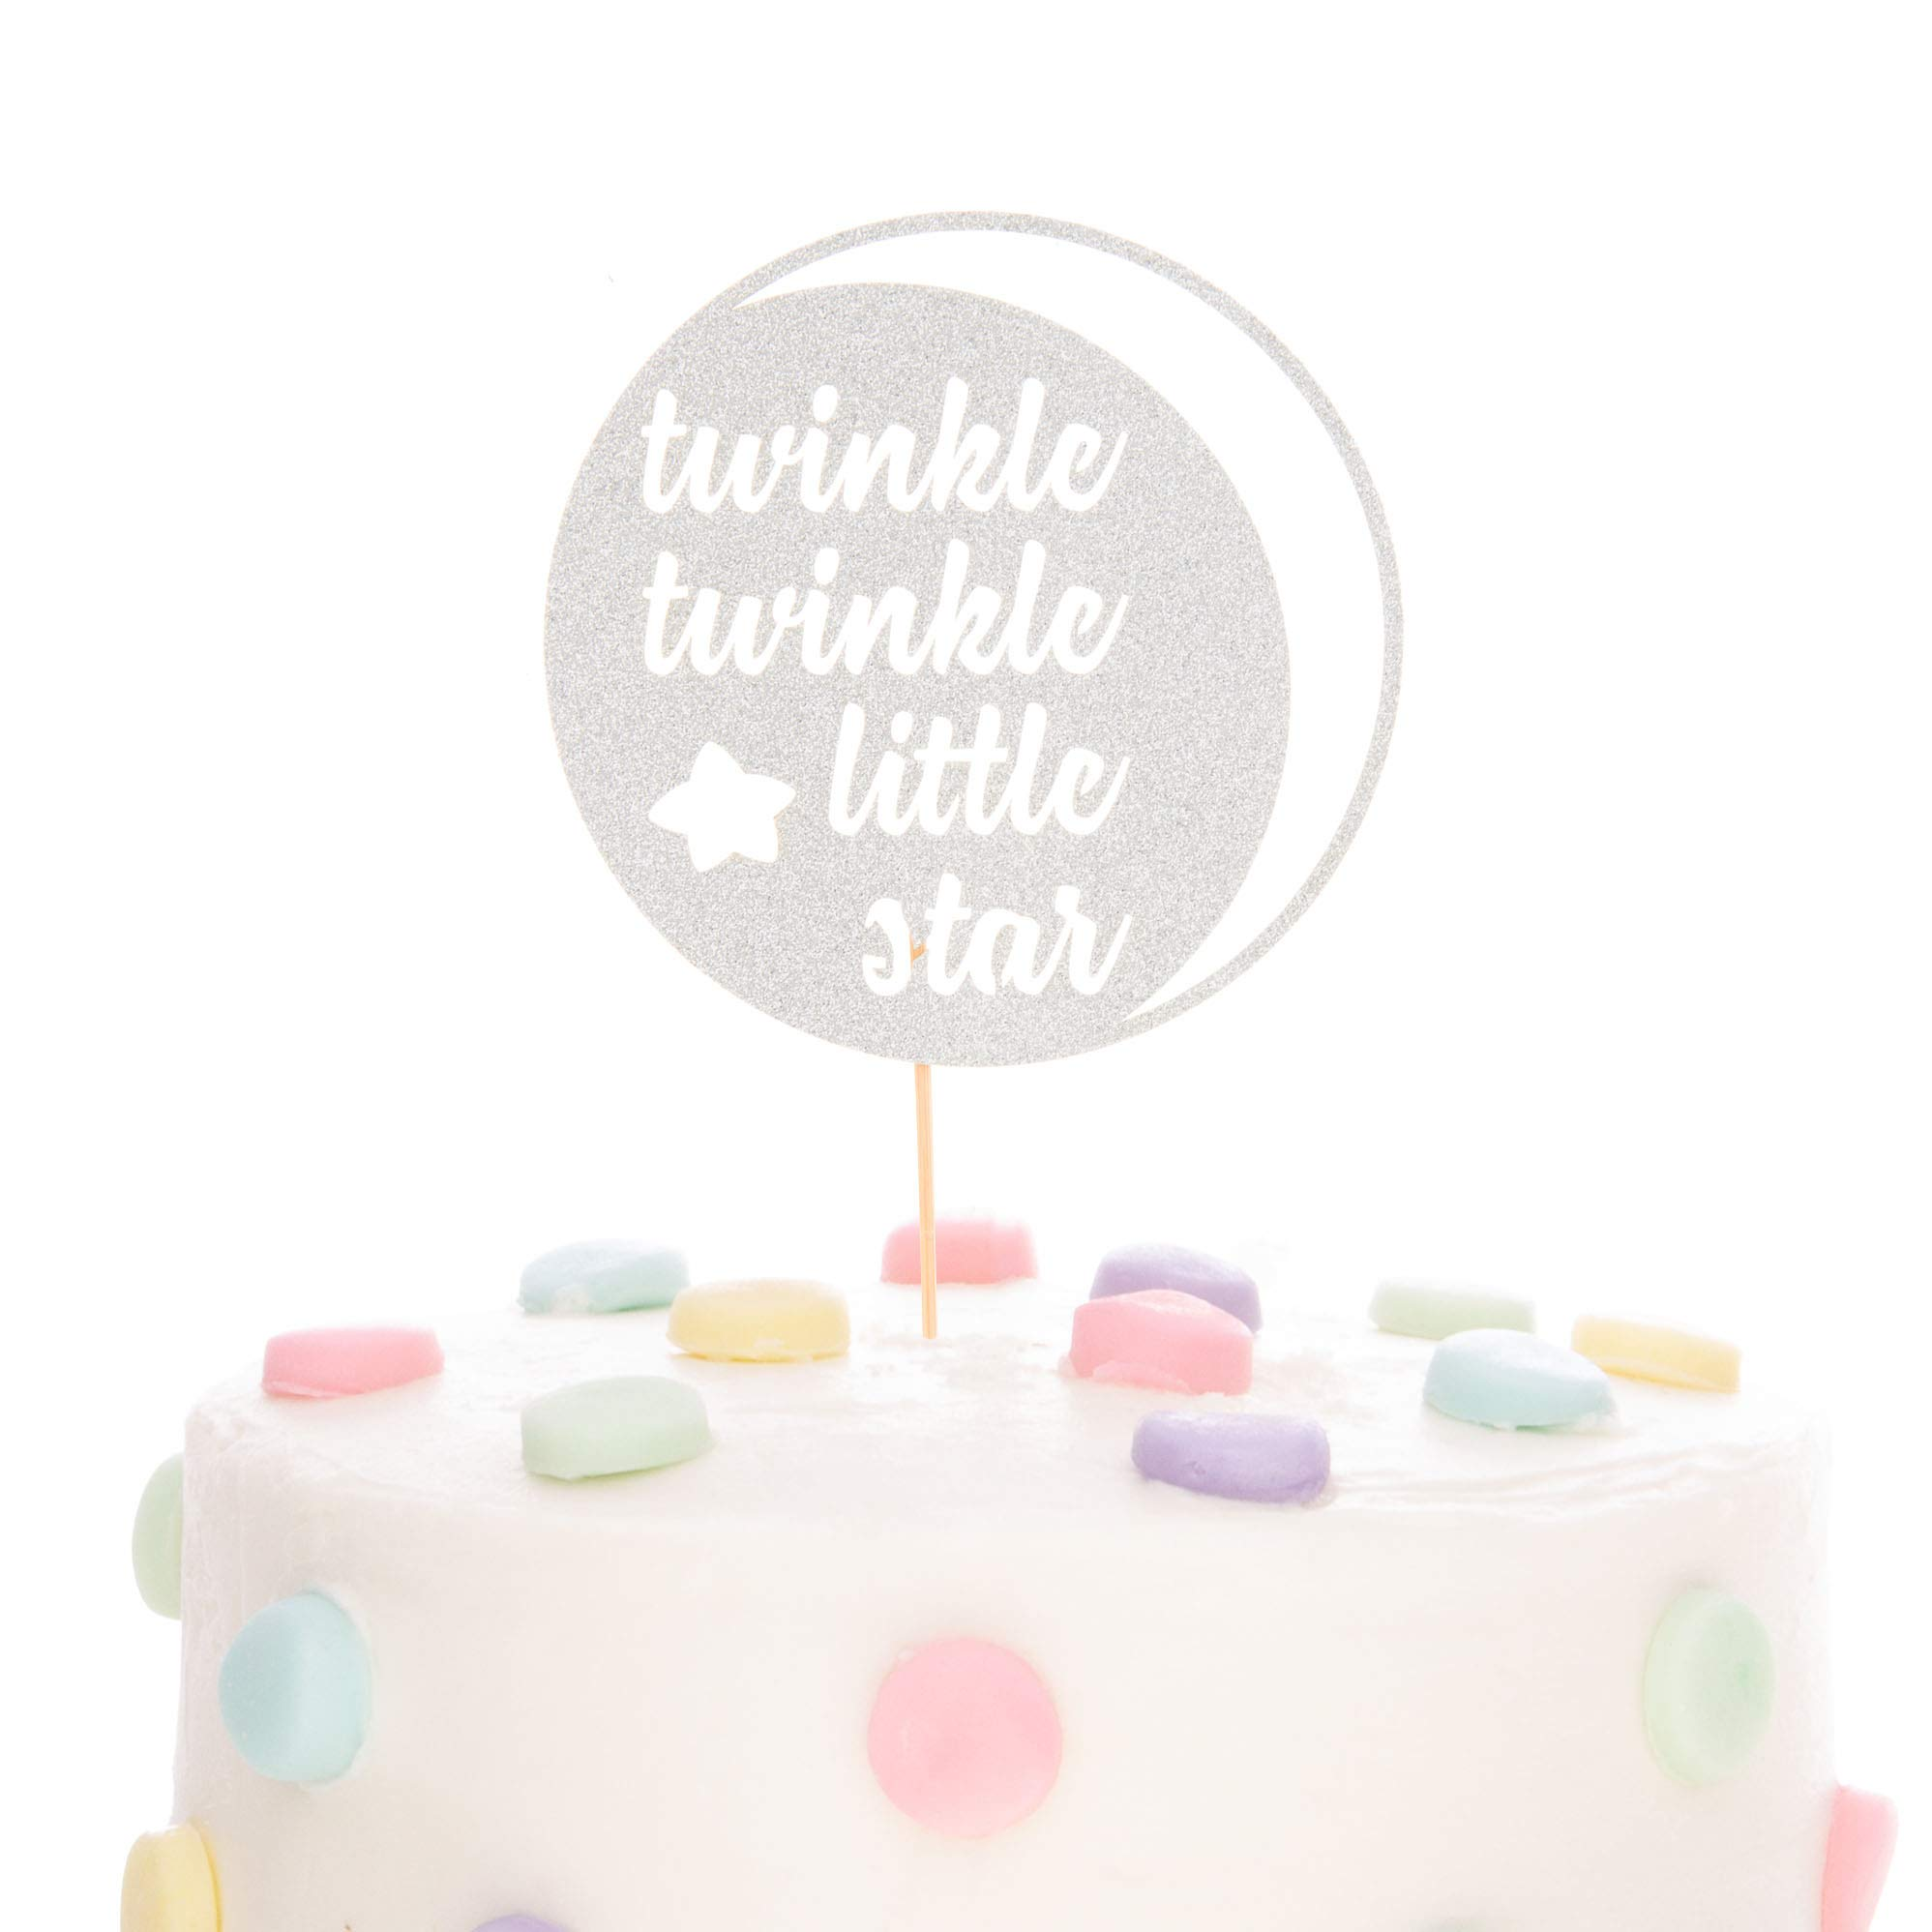 Ella Celebration Twinkle Twinkle Little Star Cake Topper Glitter Double Sided Cardstock Paperboard Toppers Baby Shower Gender Reveal Photo Props Paper Decoration for 1st Birthday (Twinkle Moon Silver)